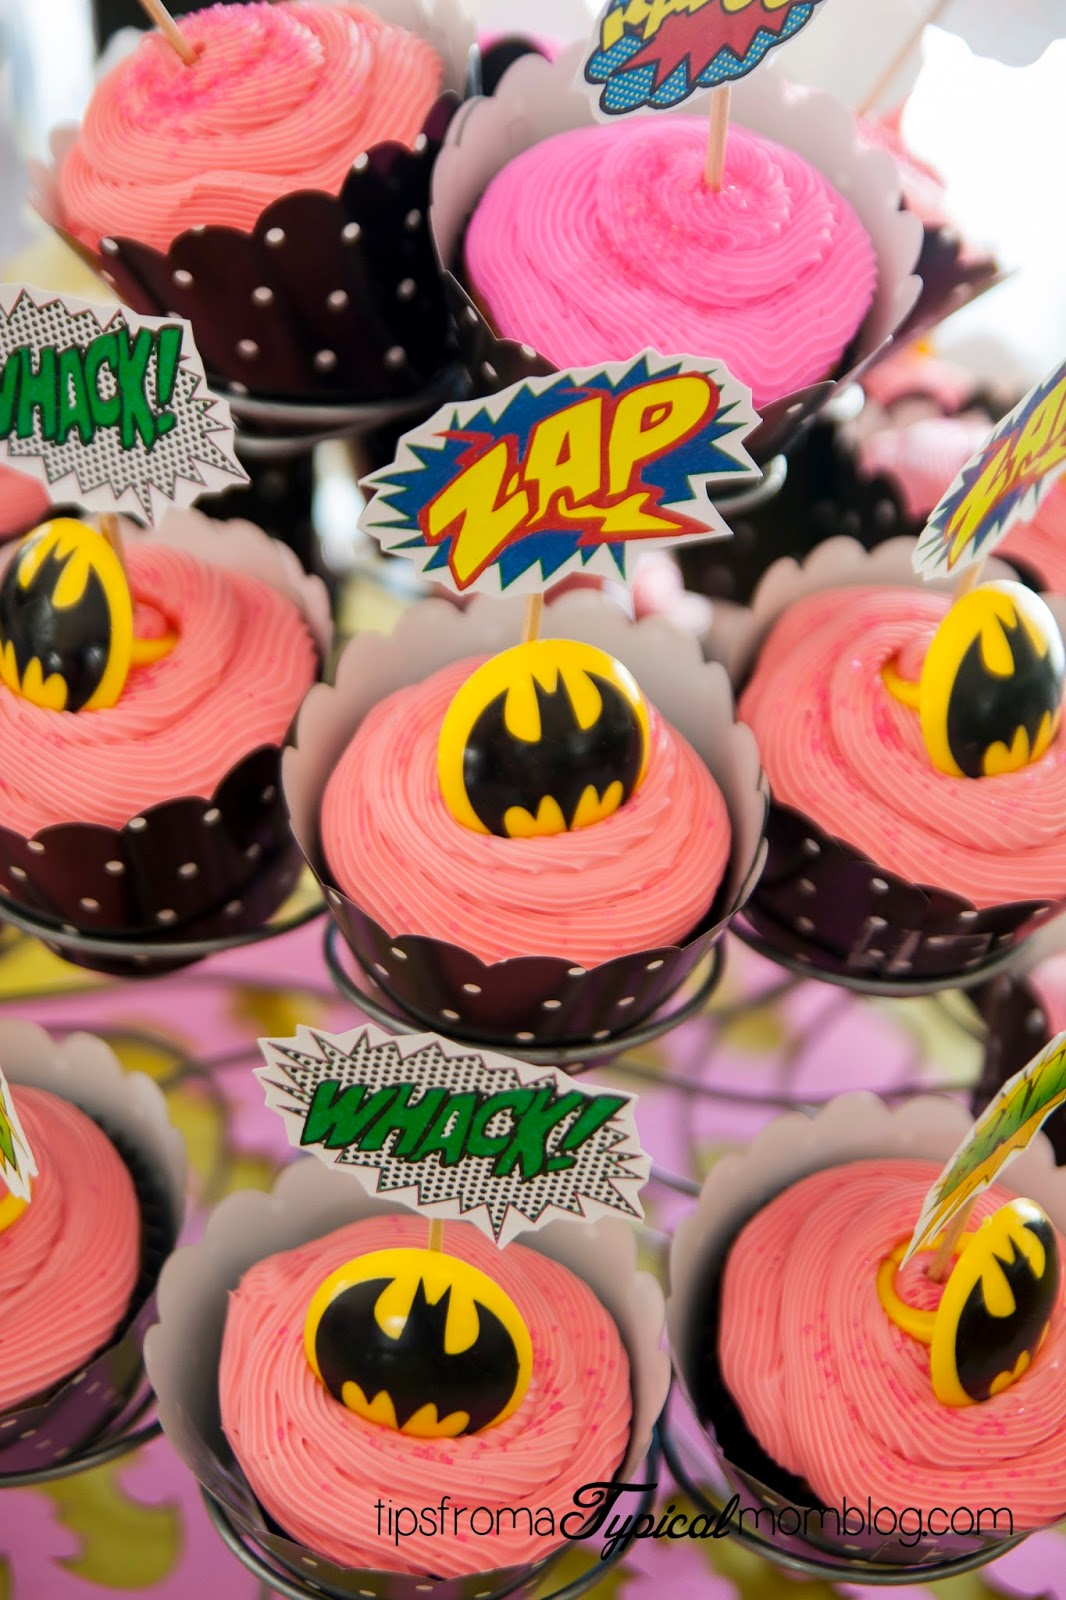 ... taping them to toothpicks. A Bat Man ring makes a nice addition too